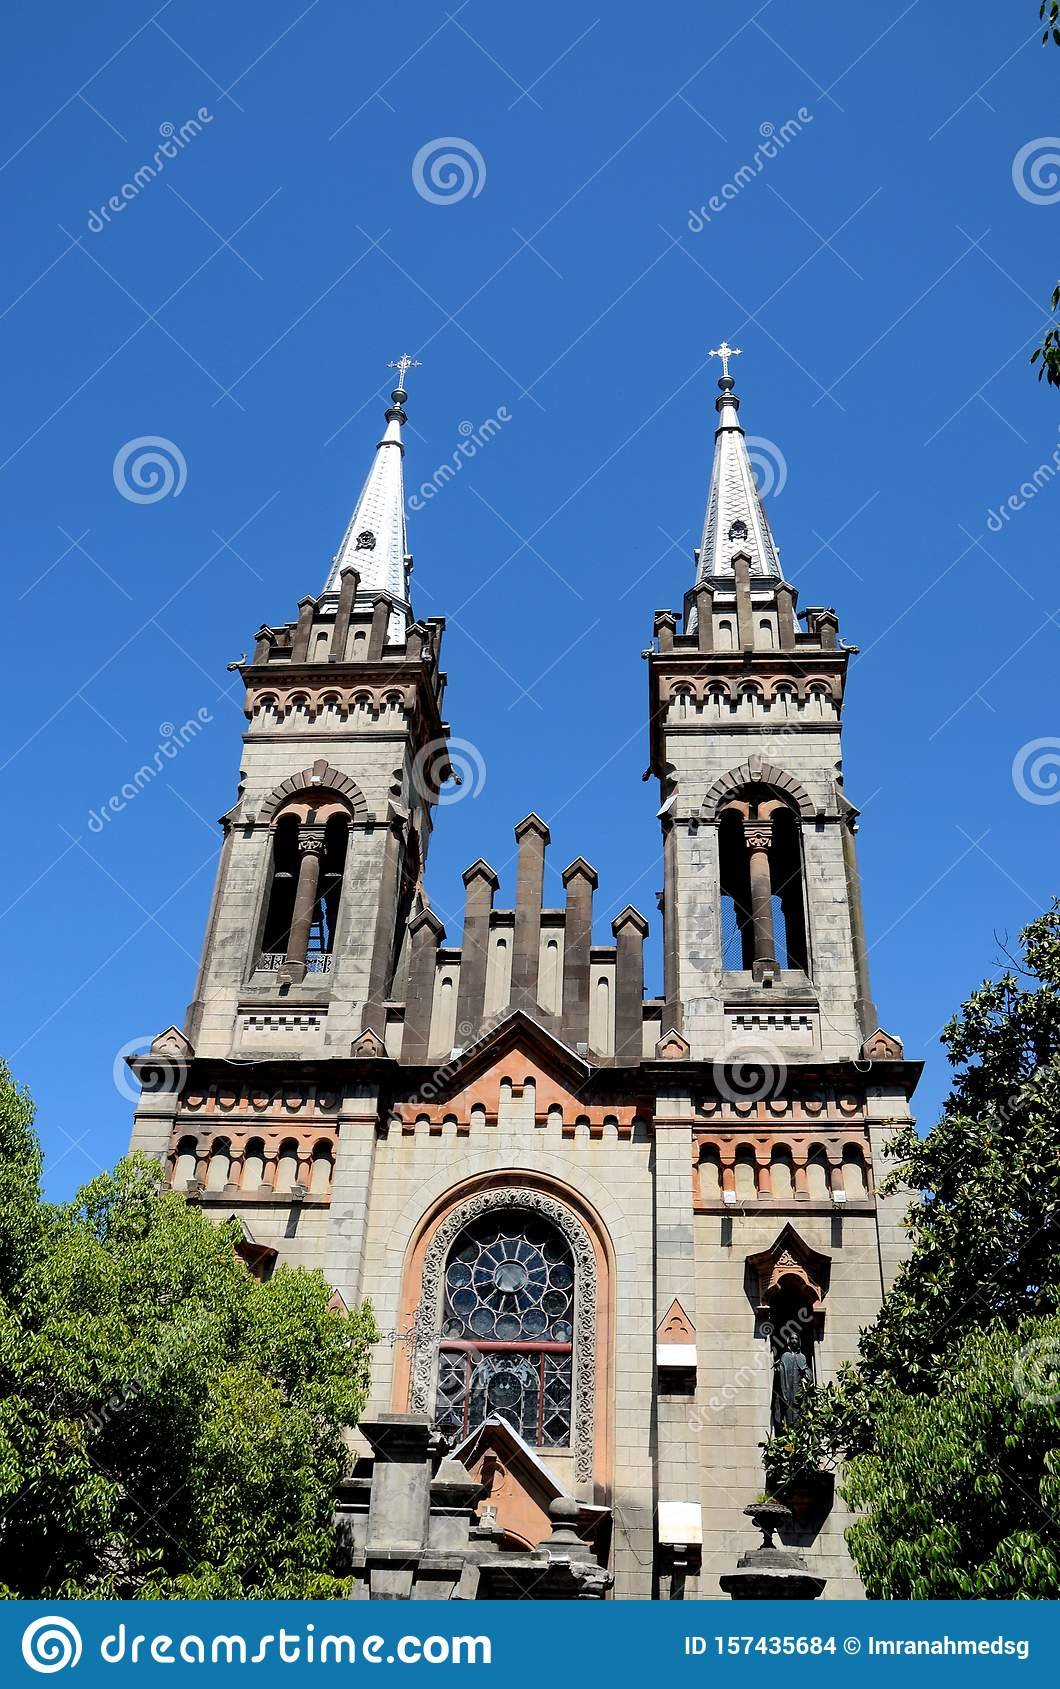 Steeples towers and windows of Gothic church Cathedral of Mother of the God Batumi Georgia